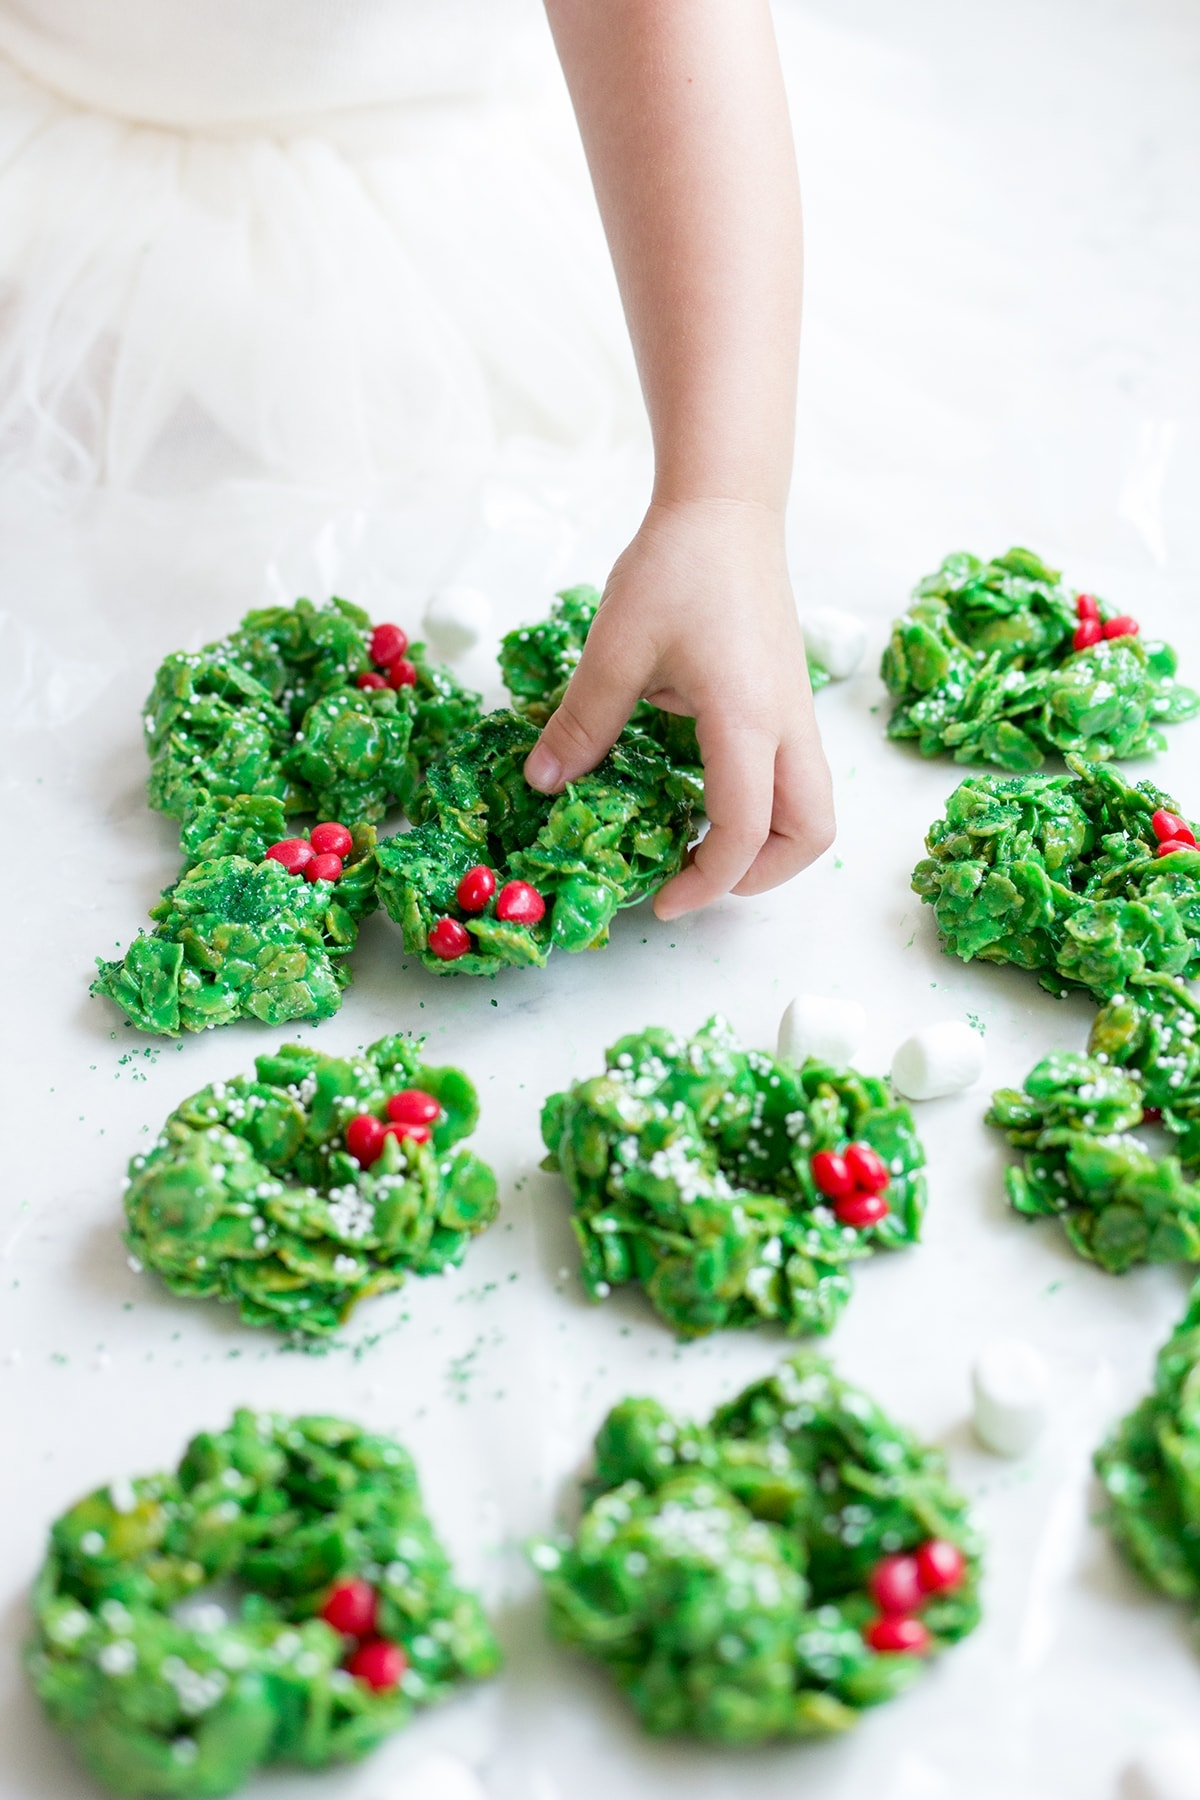 Oct 29, · This recipe for no-bake Christmas wreath cookies has just six ingredients and can be made in 15 minutes. These cornflake wreath cookies are a festive addition to your holiday dessert table! These amazingly delicious little cornflake cookies are dressed up for the holidays, kids and adults alike /5(5).